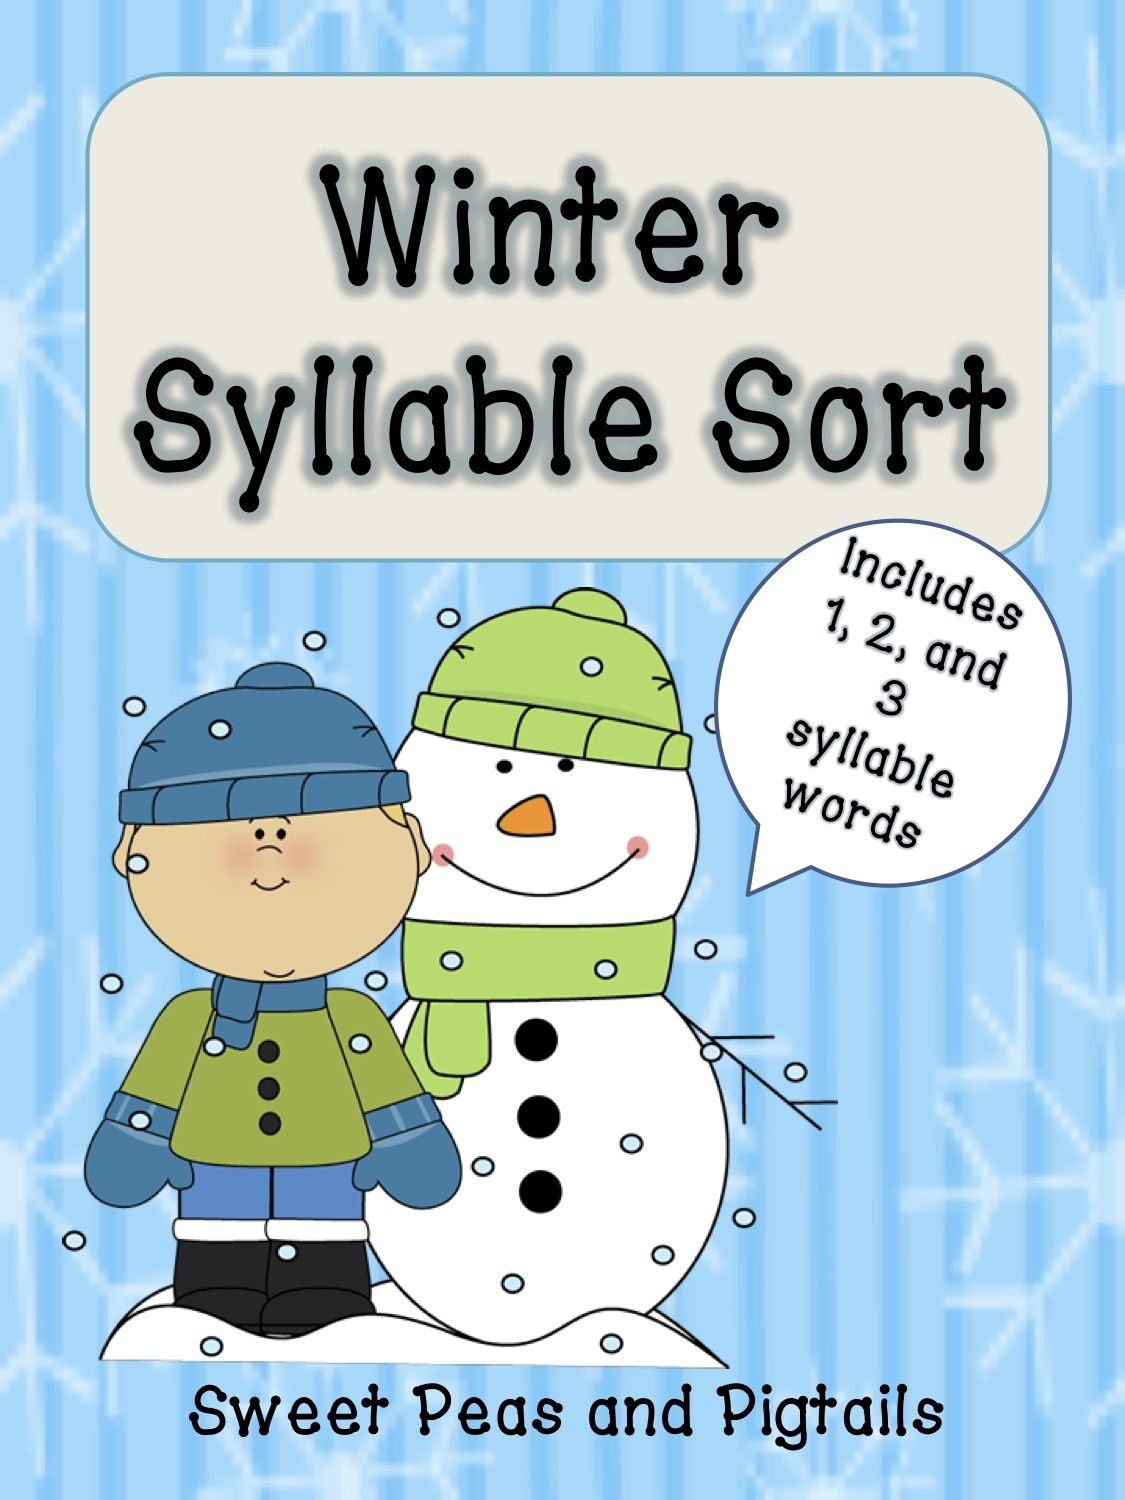 Free Winter Syllable Sorting Activity Great Way To Target Phonological Awareness